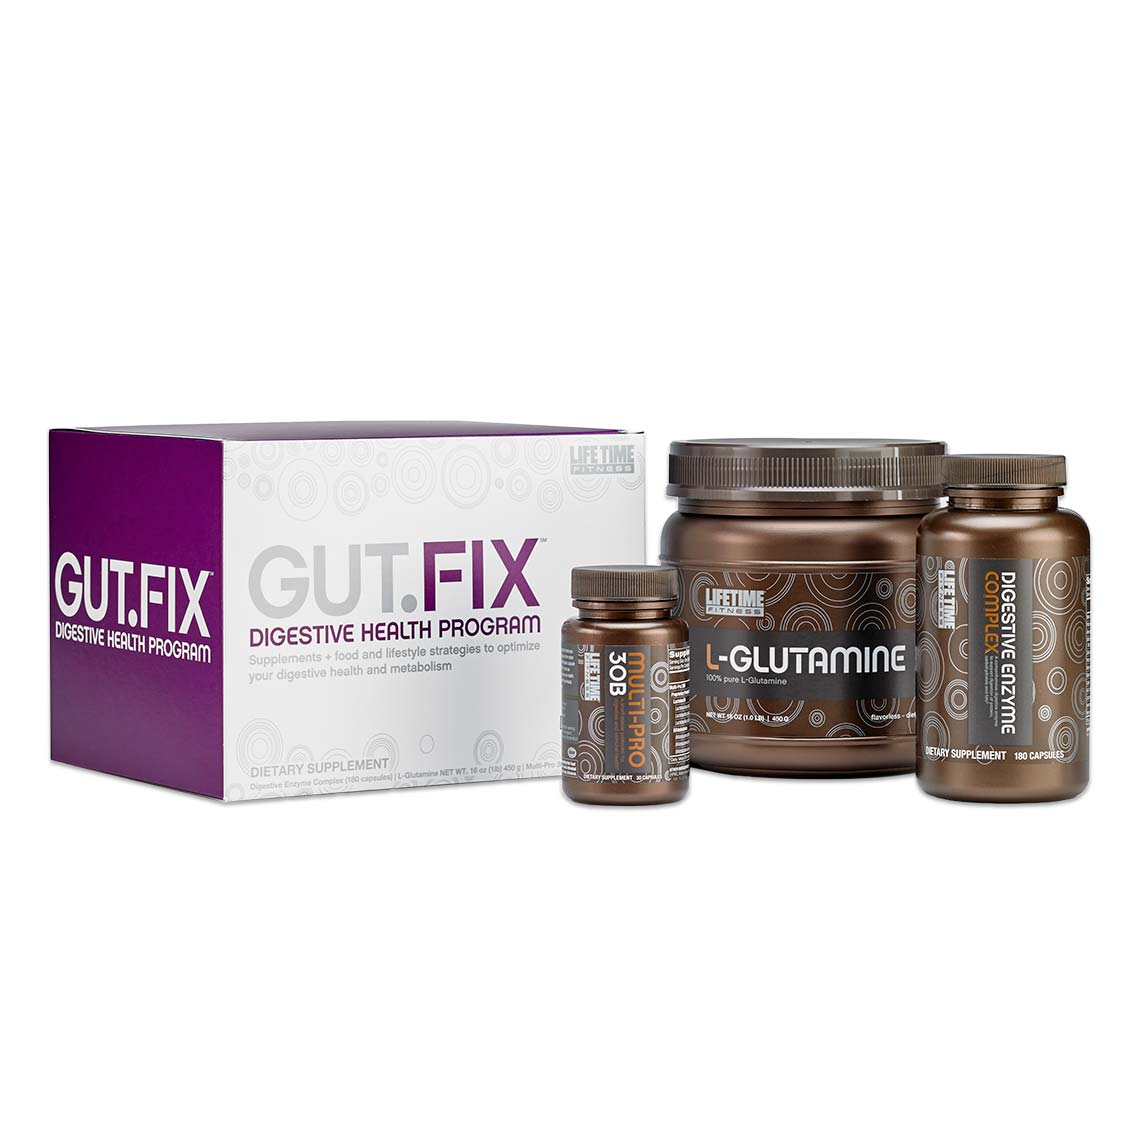 gut-fix-group-rt-clip-1140x